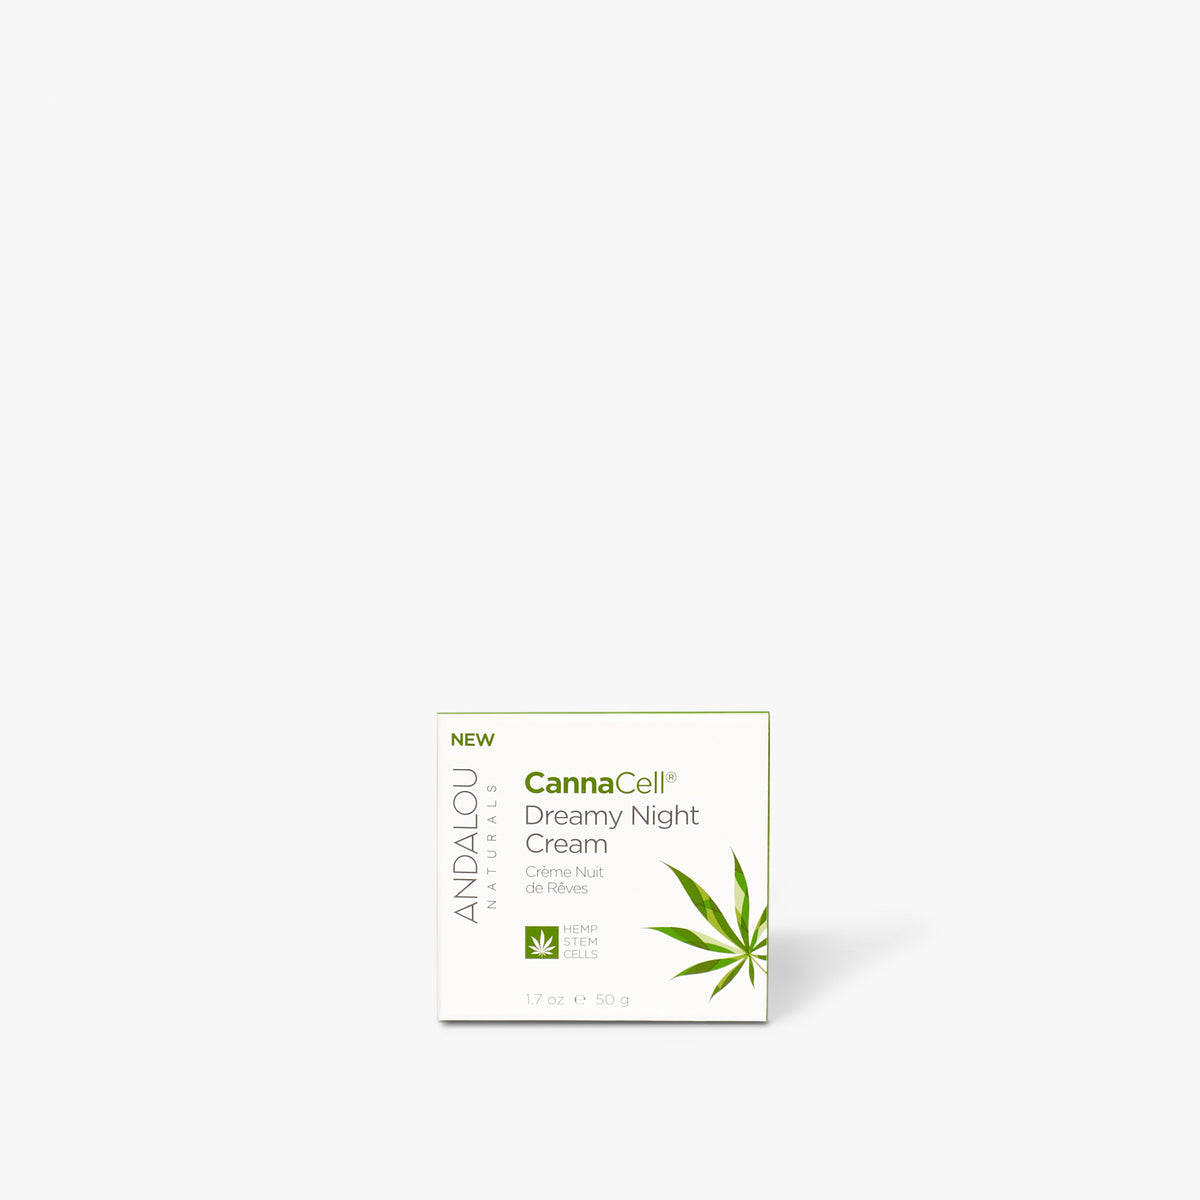 CannaCell Dreamy Night Cream - Andalou Naturals US